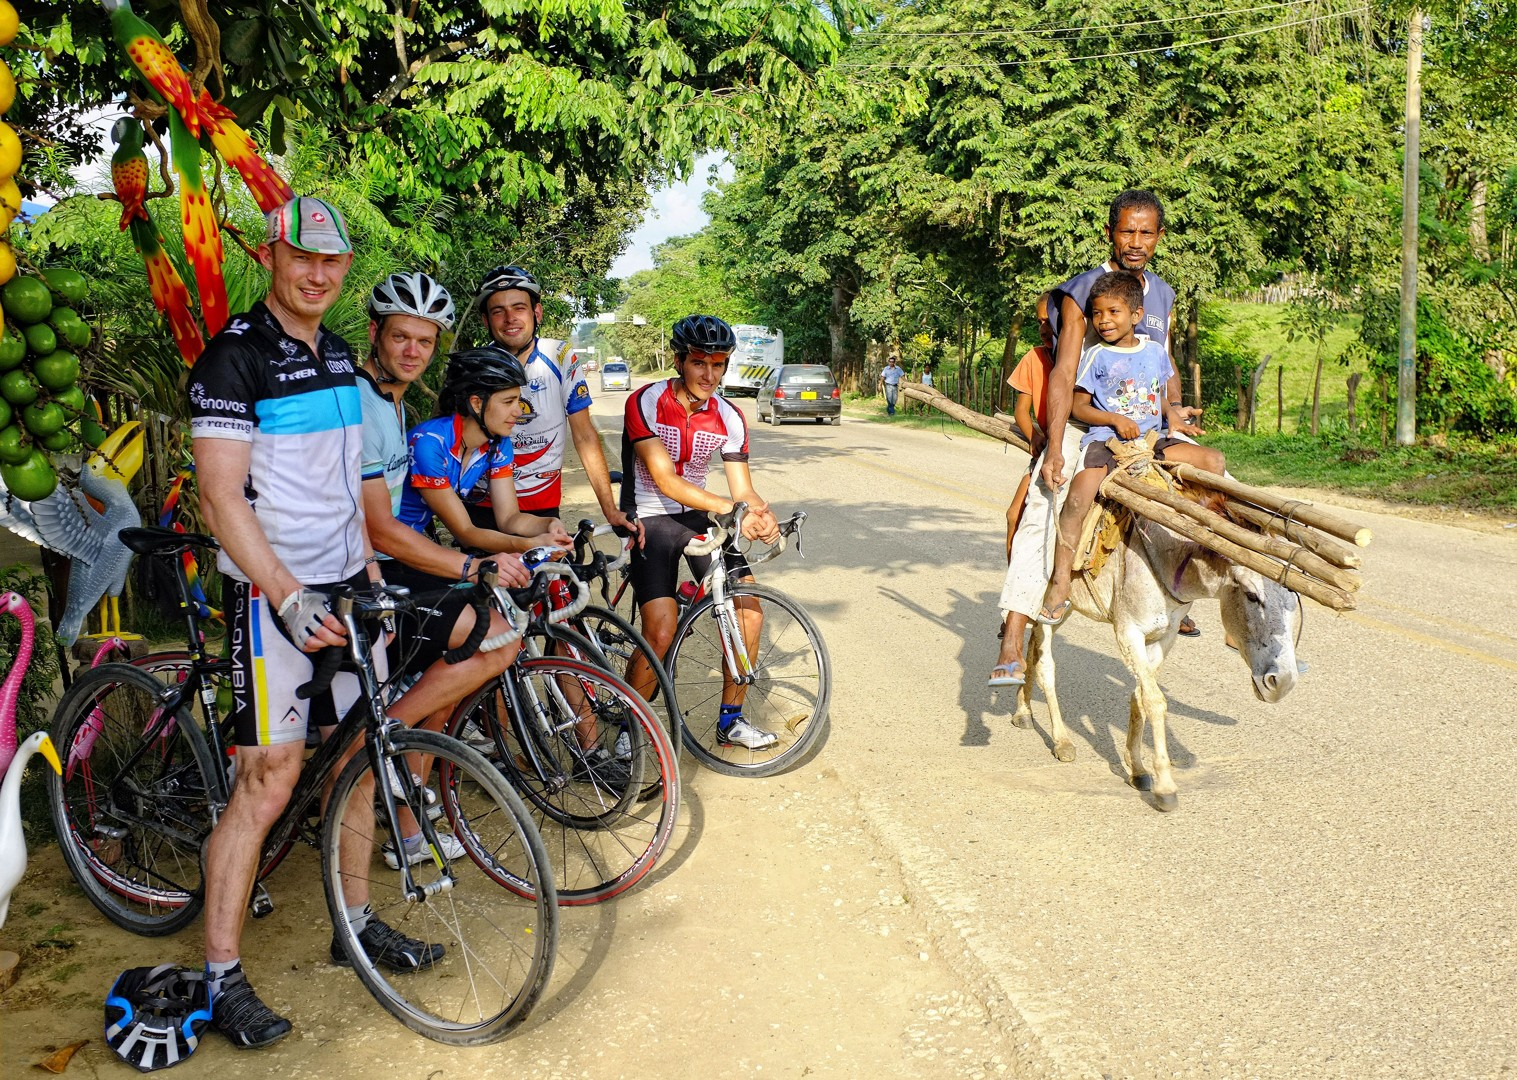 saddle-skedaddle-guided-road-cycling-holiday-emerald-mountains-colombia.jpg - Colombia - Emerald Mountains - Road Cycling